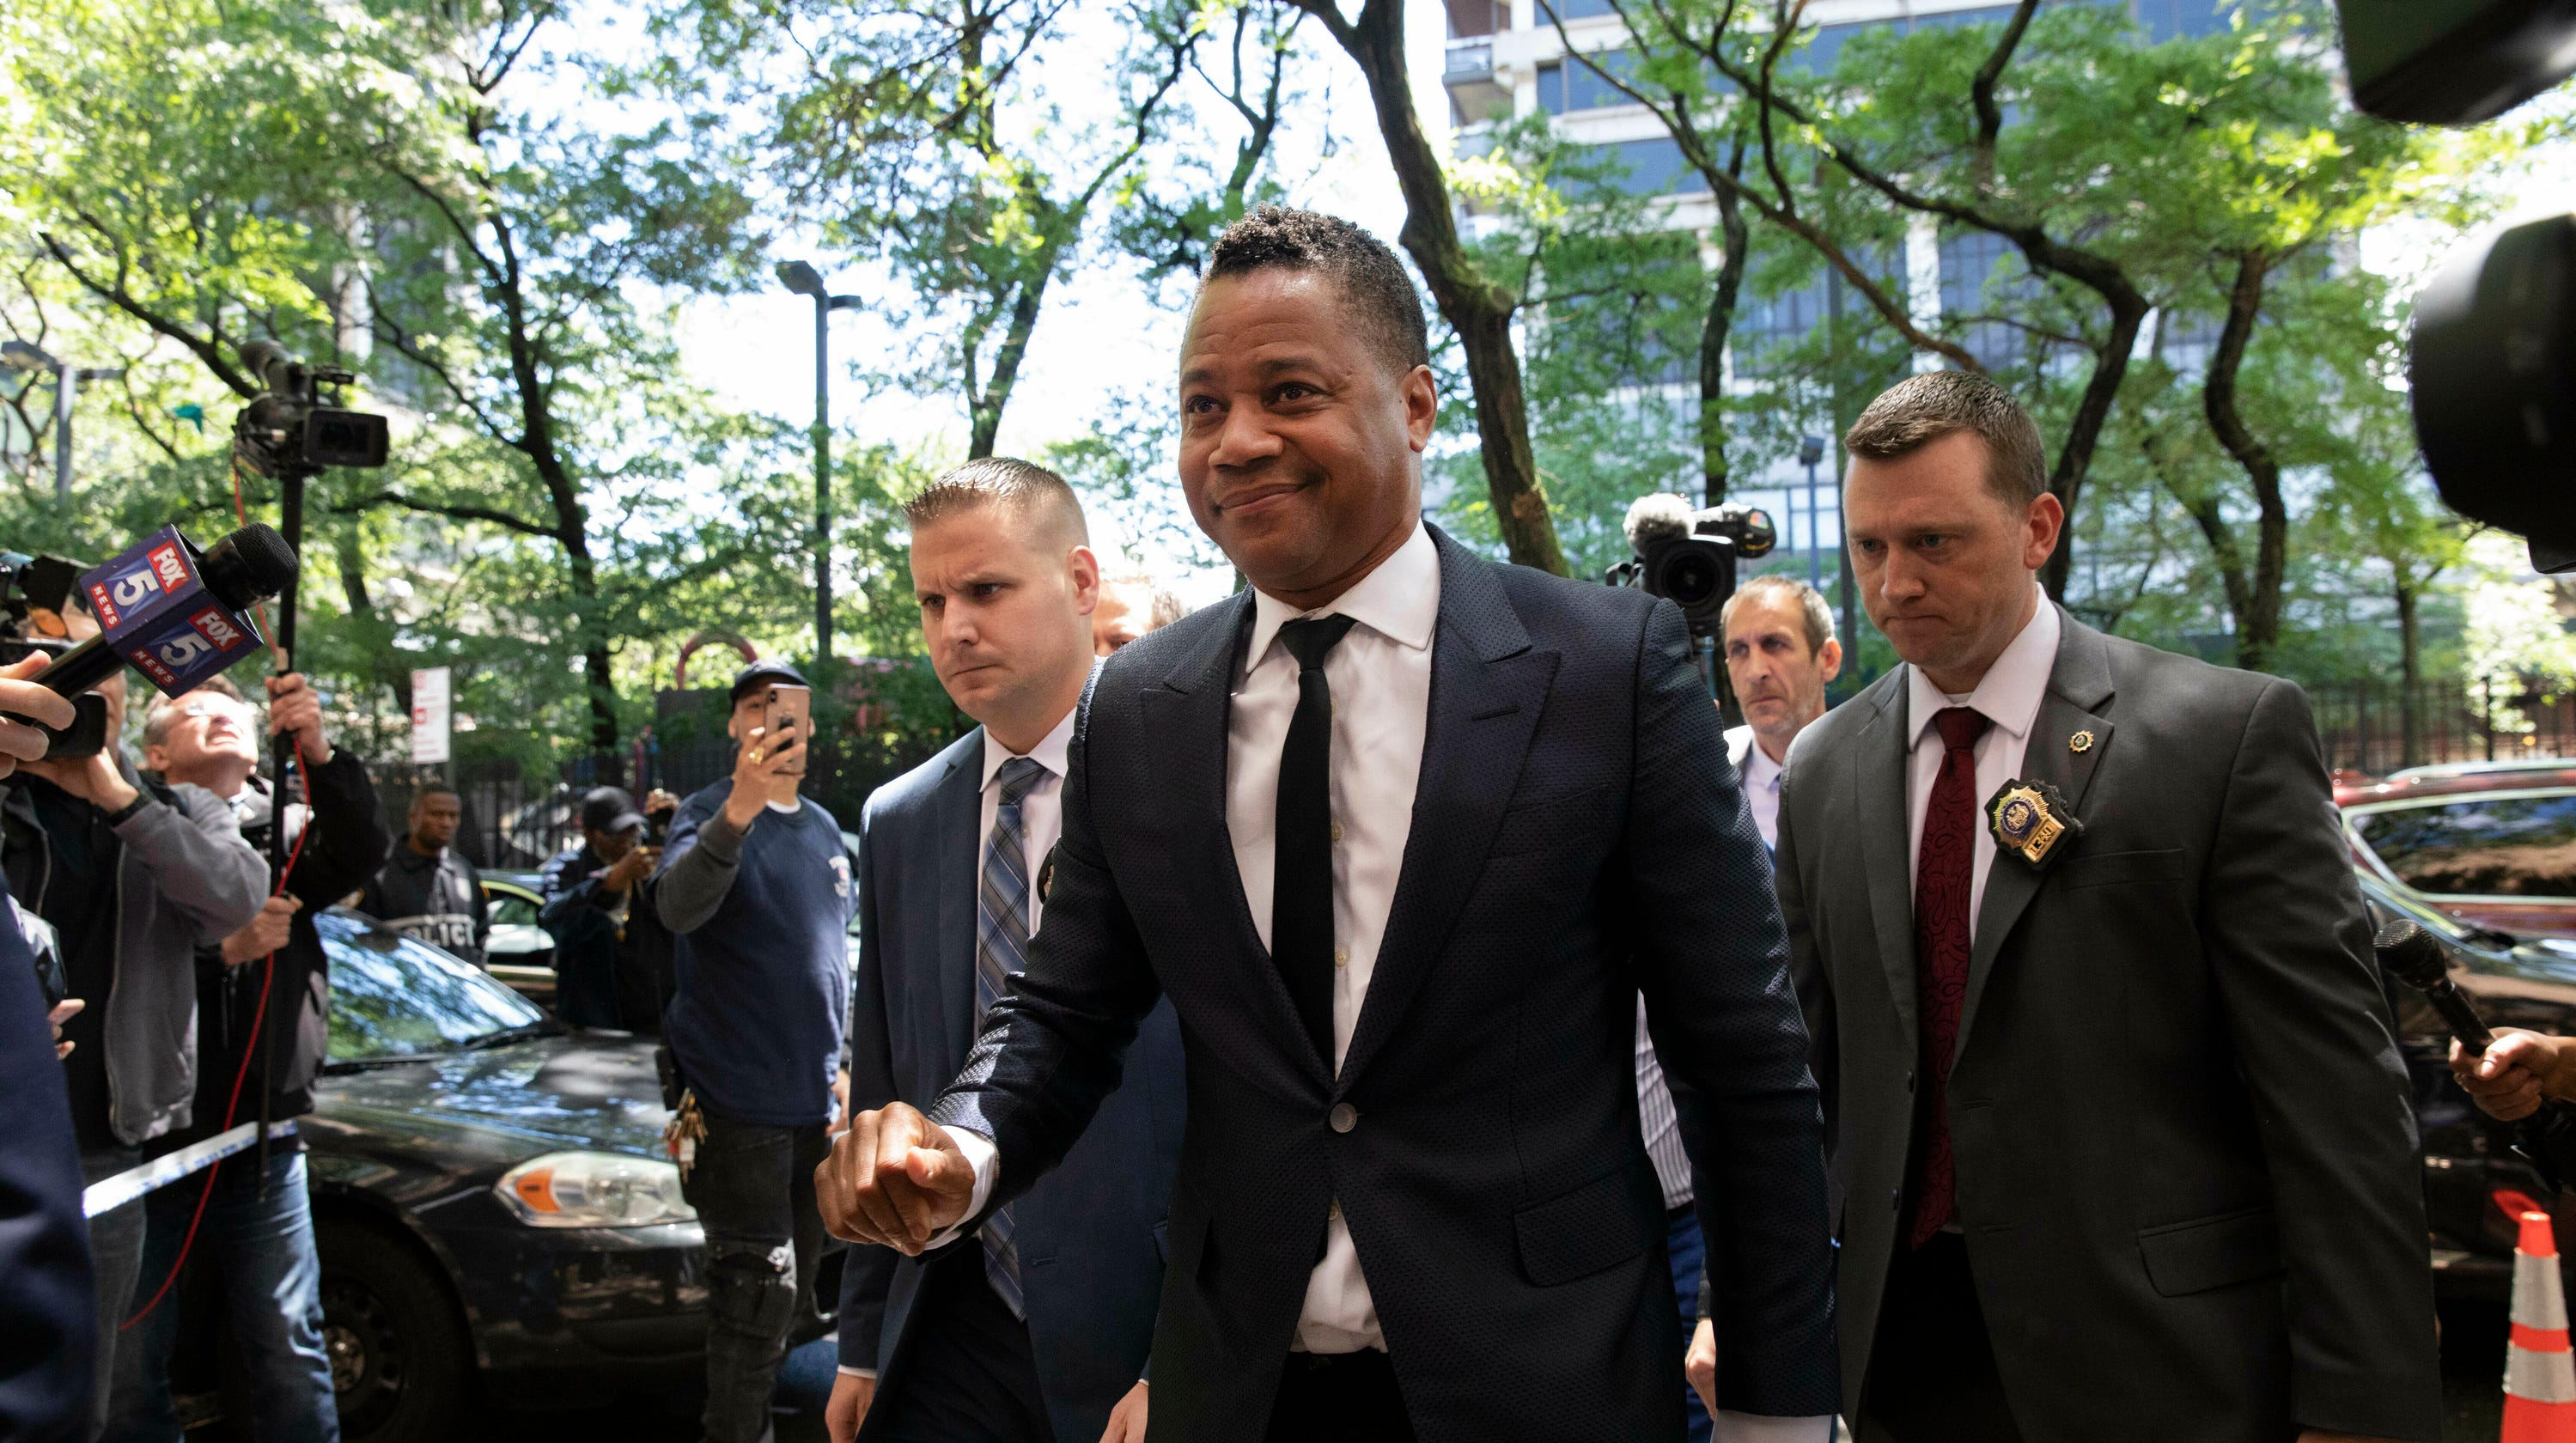 Cuba Gooding Jr. surrenders to NYPD on groping allegation, charged with 'forcible touching'